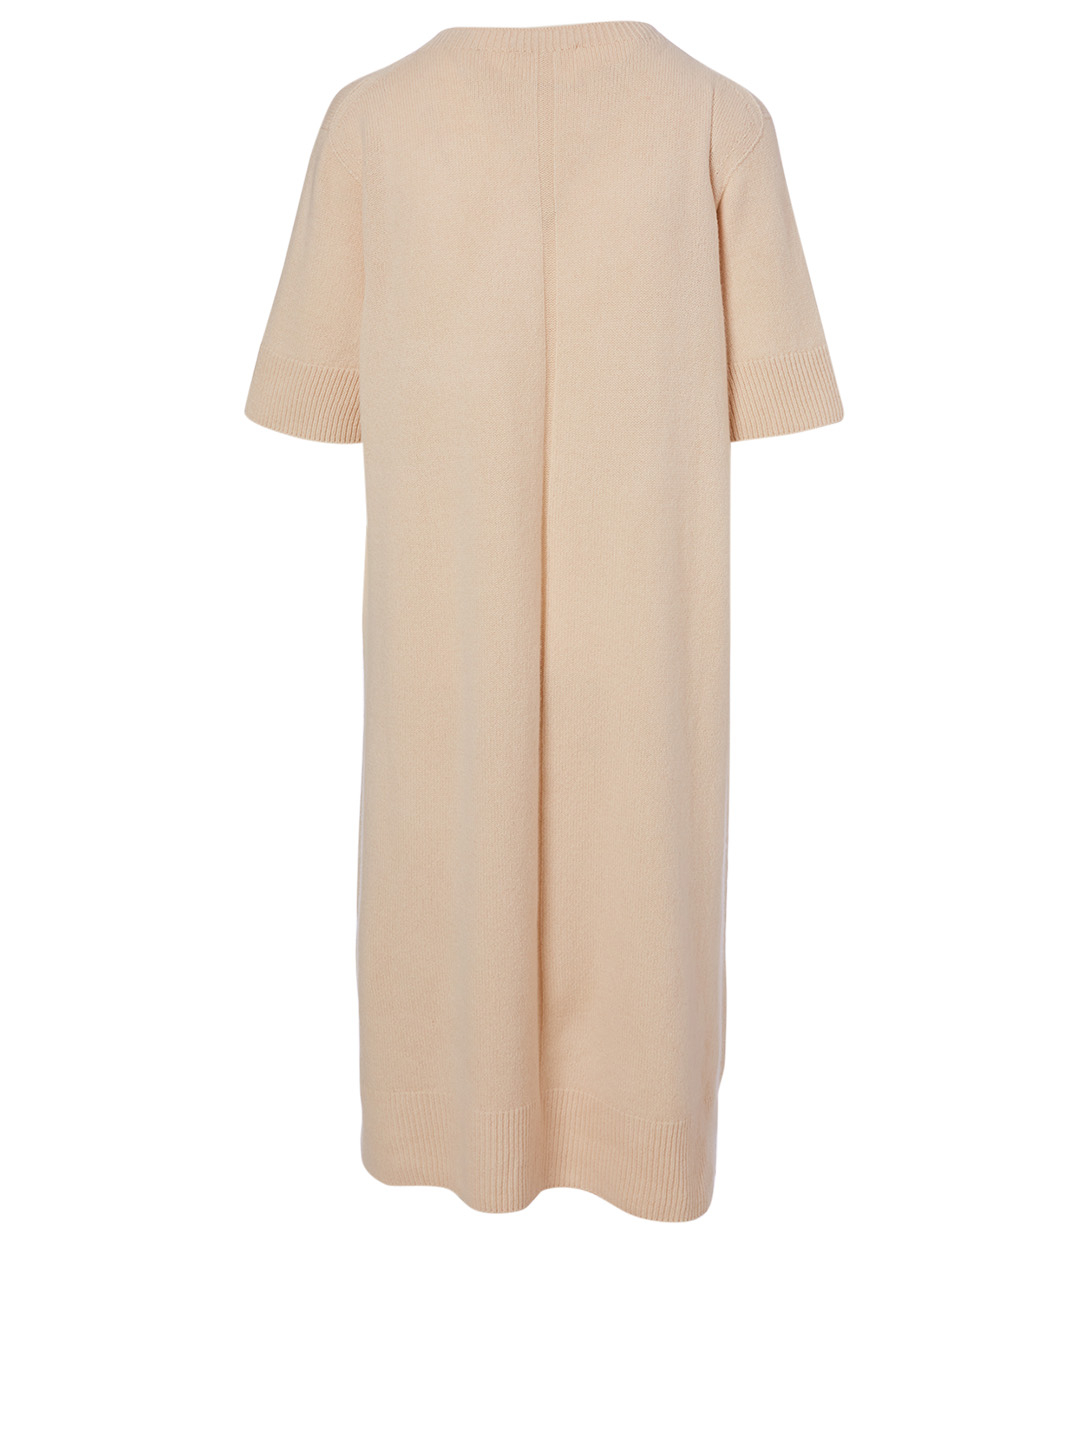 THE ROW Abini Wool And Cashmere Tunic Dress Women's Beige